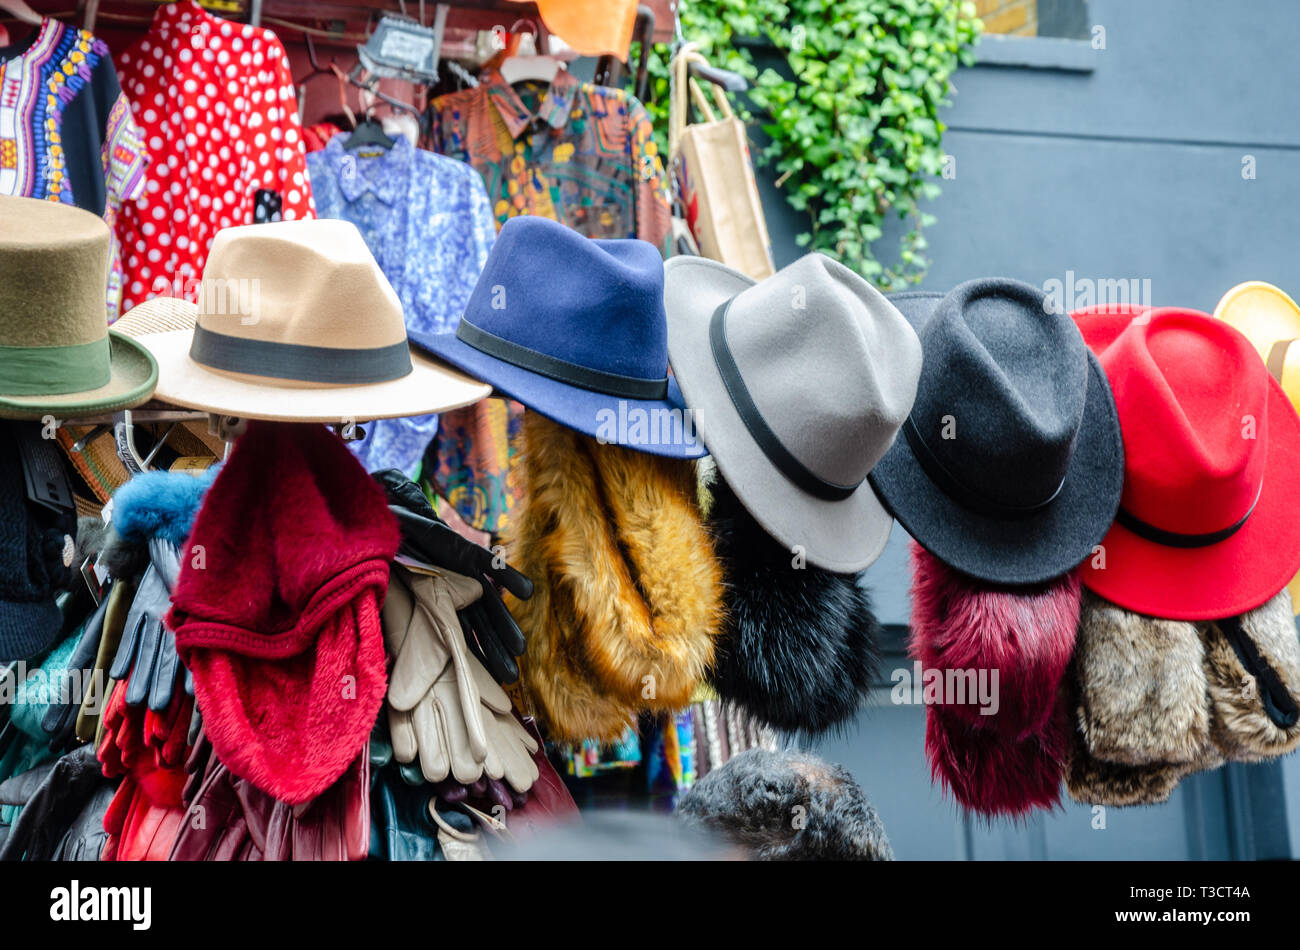 061d31ca3273b Trilby hats hung up on display at a market stall in Portobello Road Market  in London